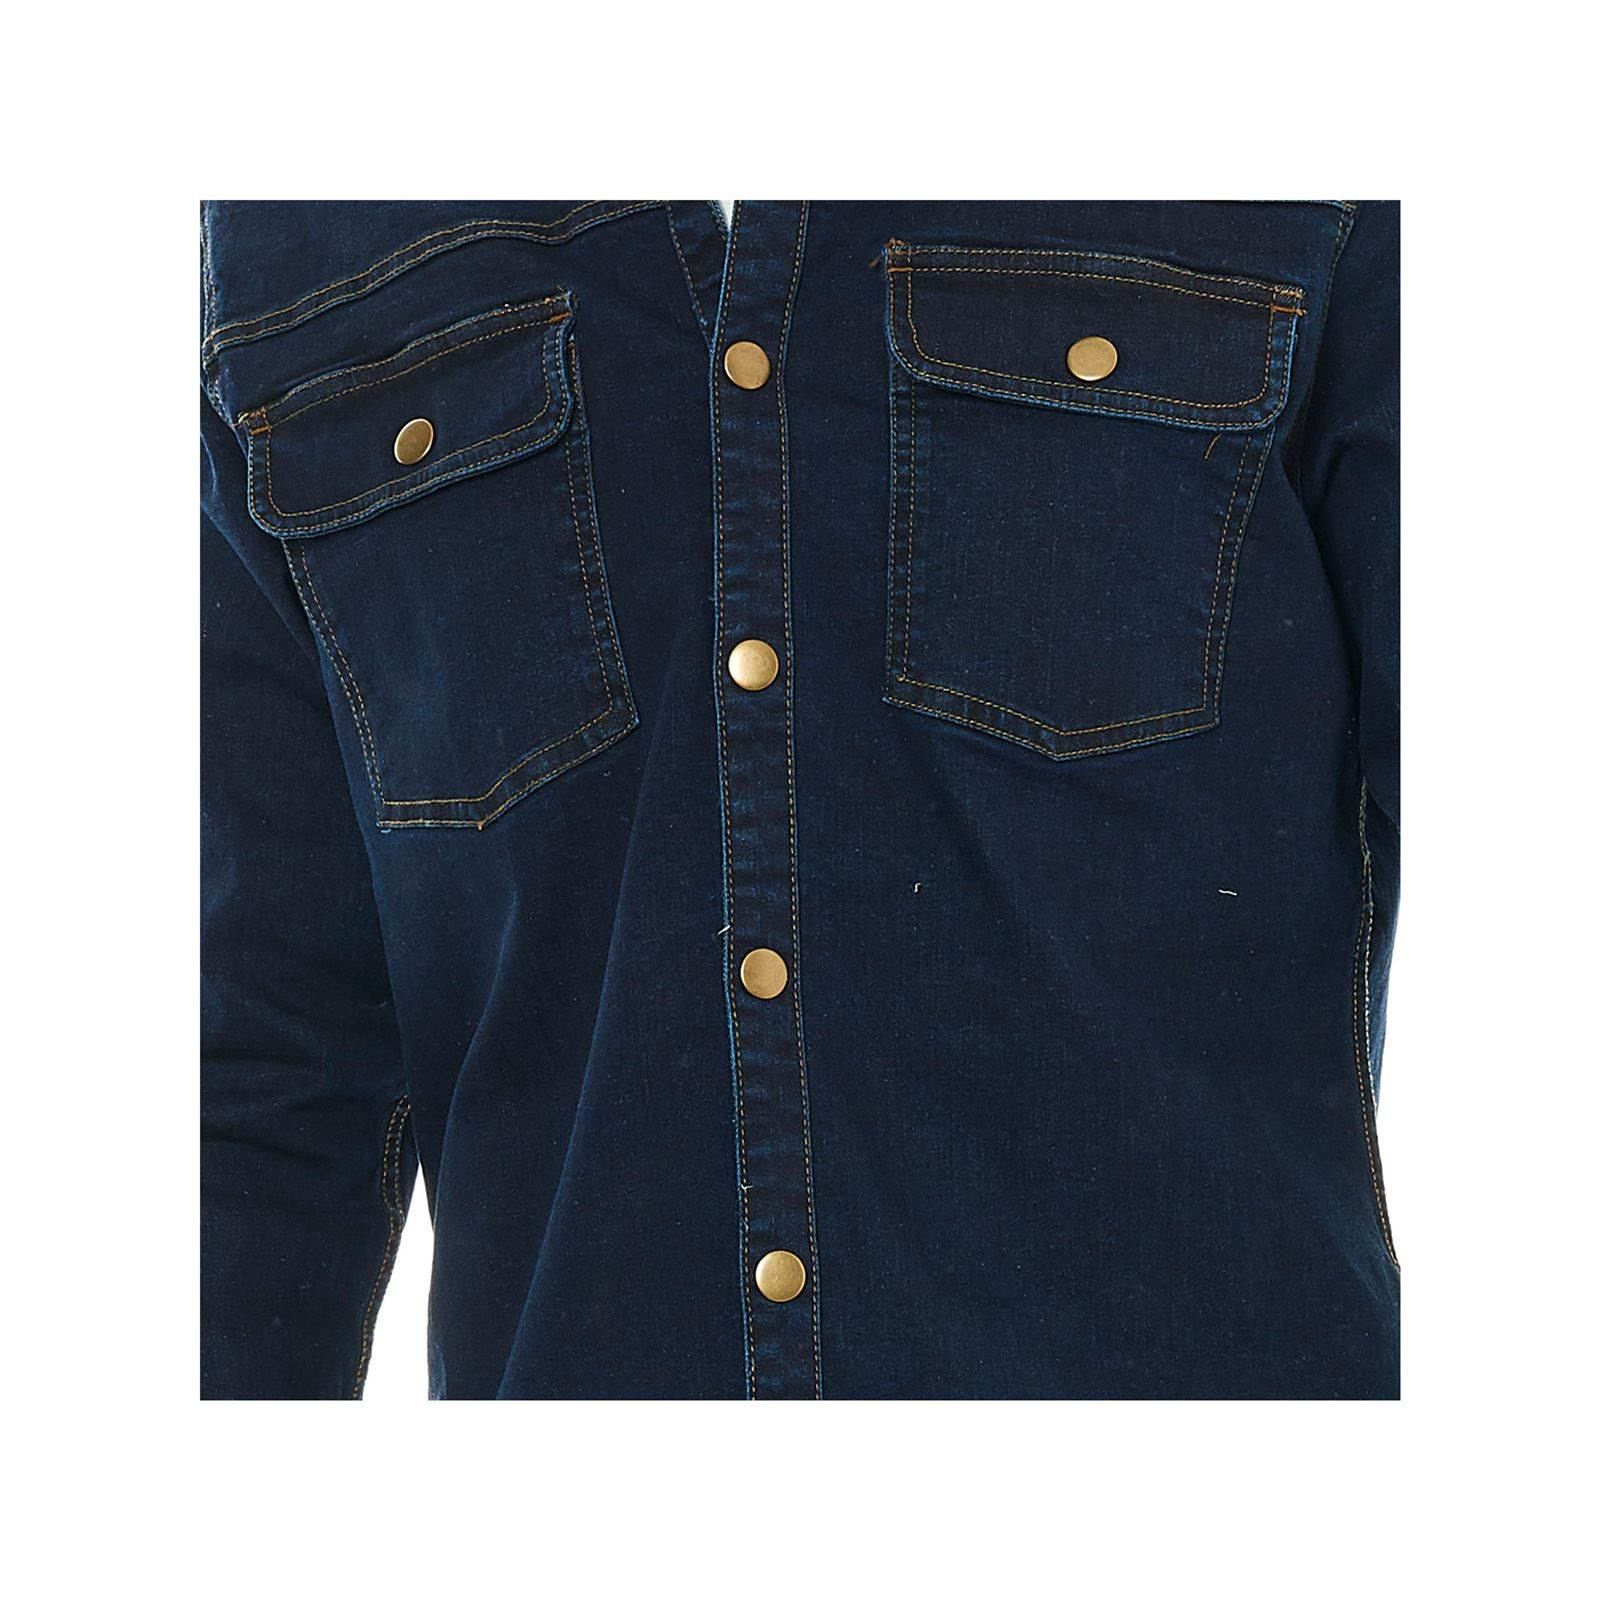 the best attitude 86703 7304c Only & sons Camicia a maniche lunghe - blu jeans   BrandAlley